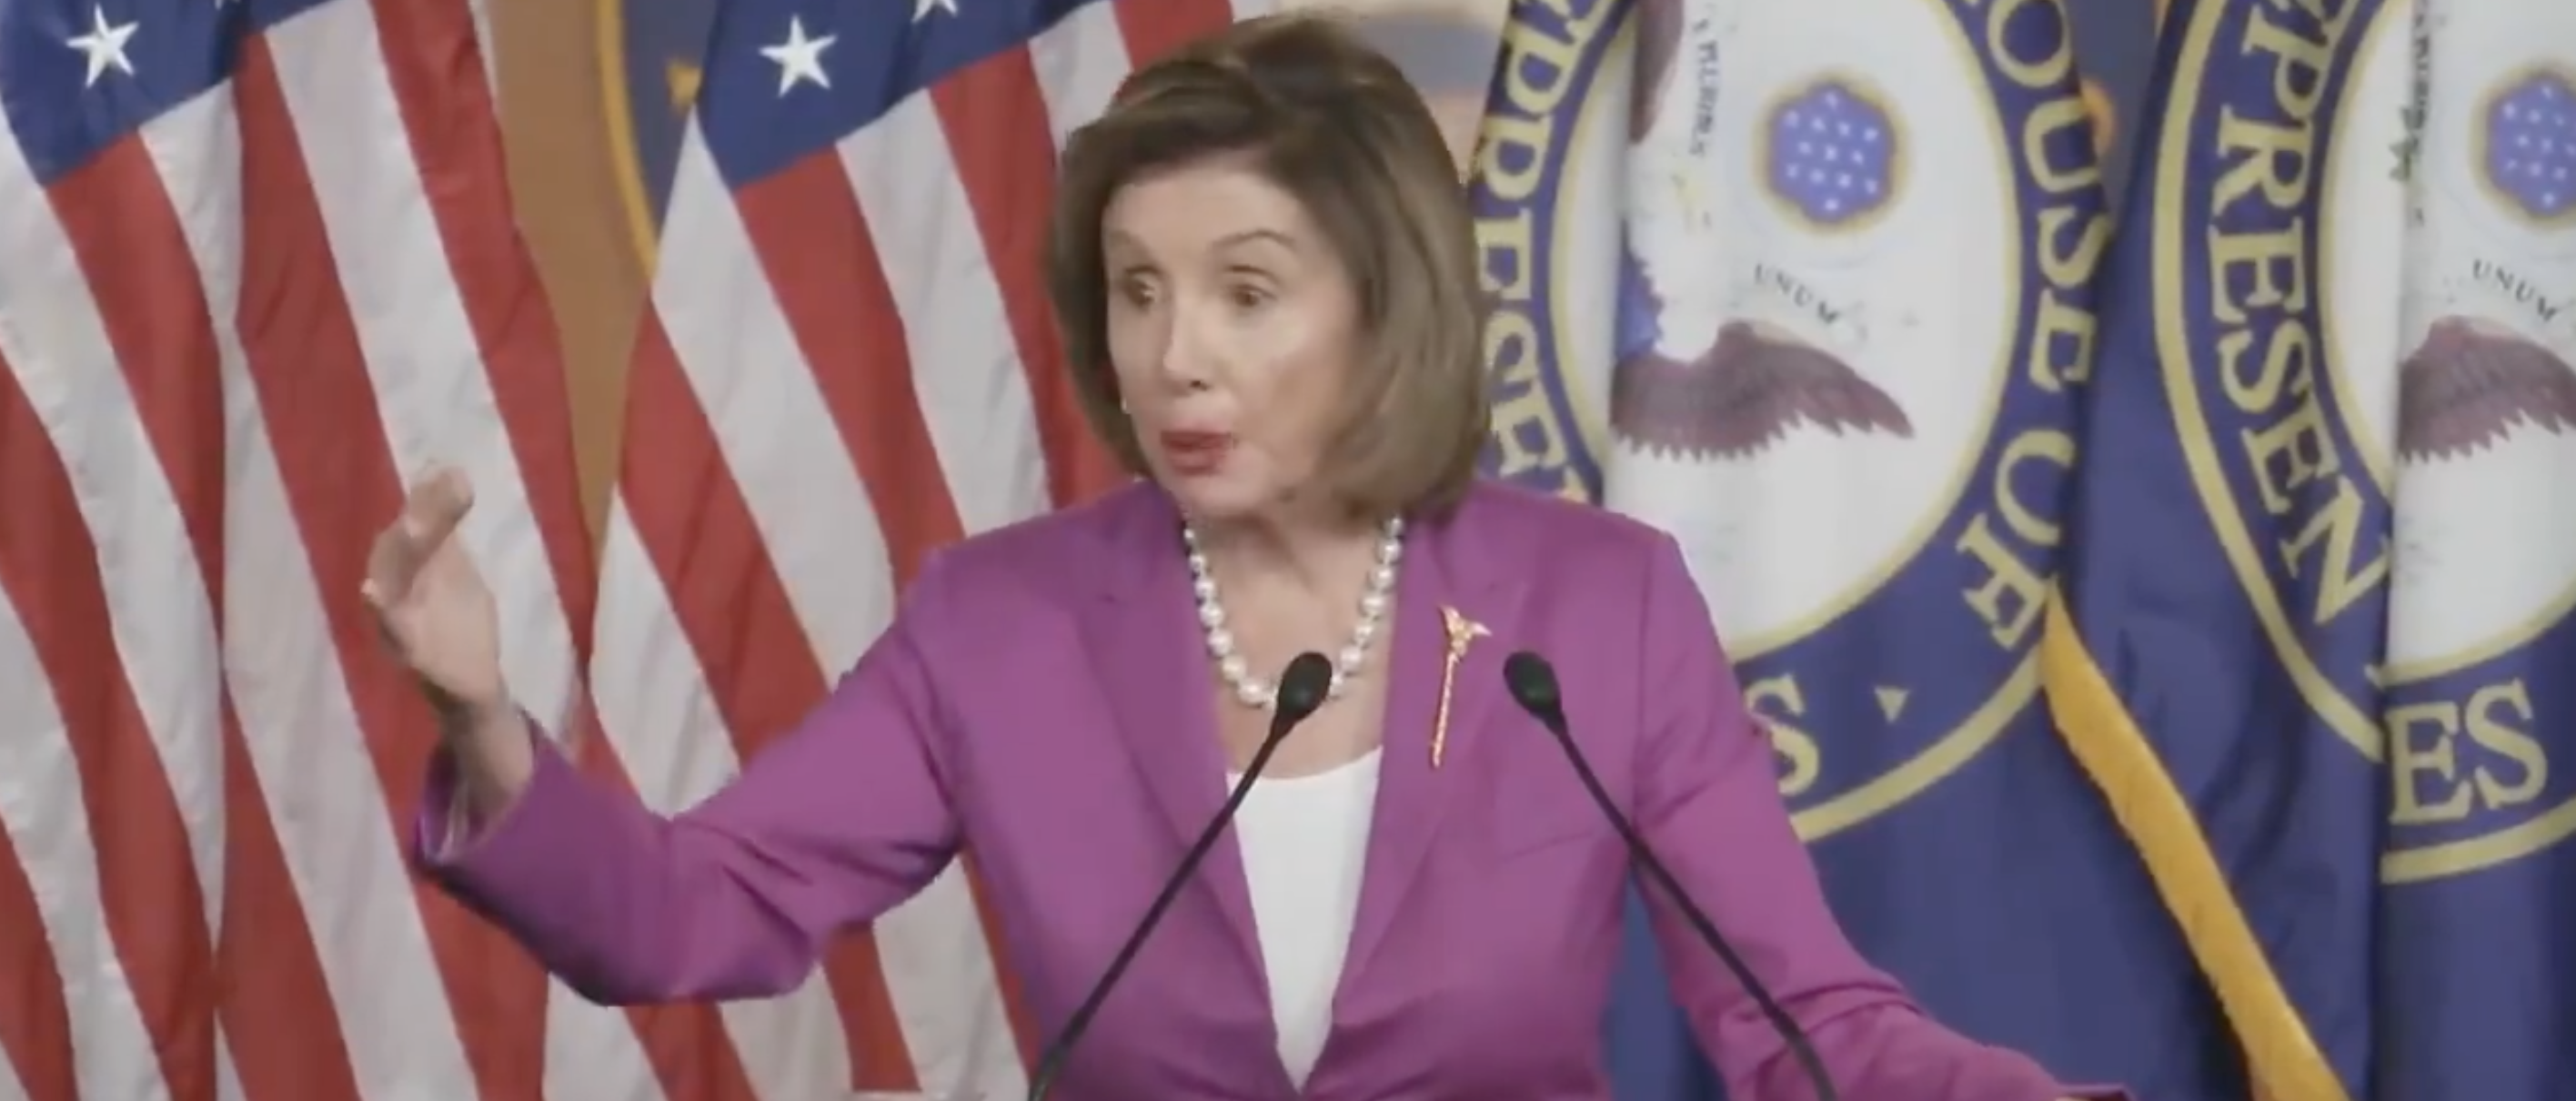 Pelosi Pulls Rank On Biden, Says He Doesn't Have The Power To Cancel Student Debt